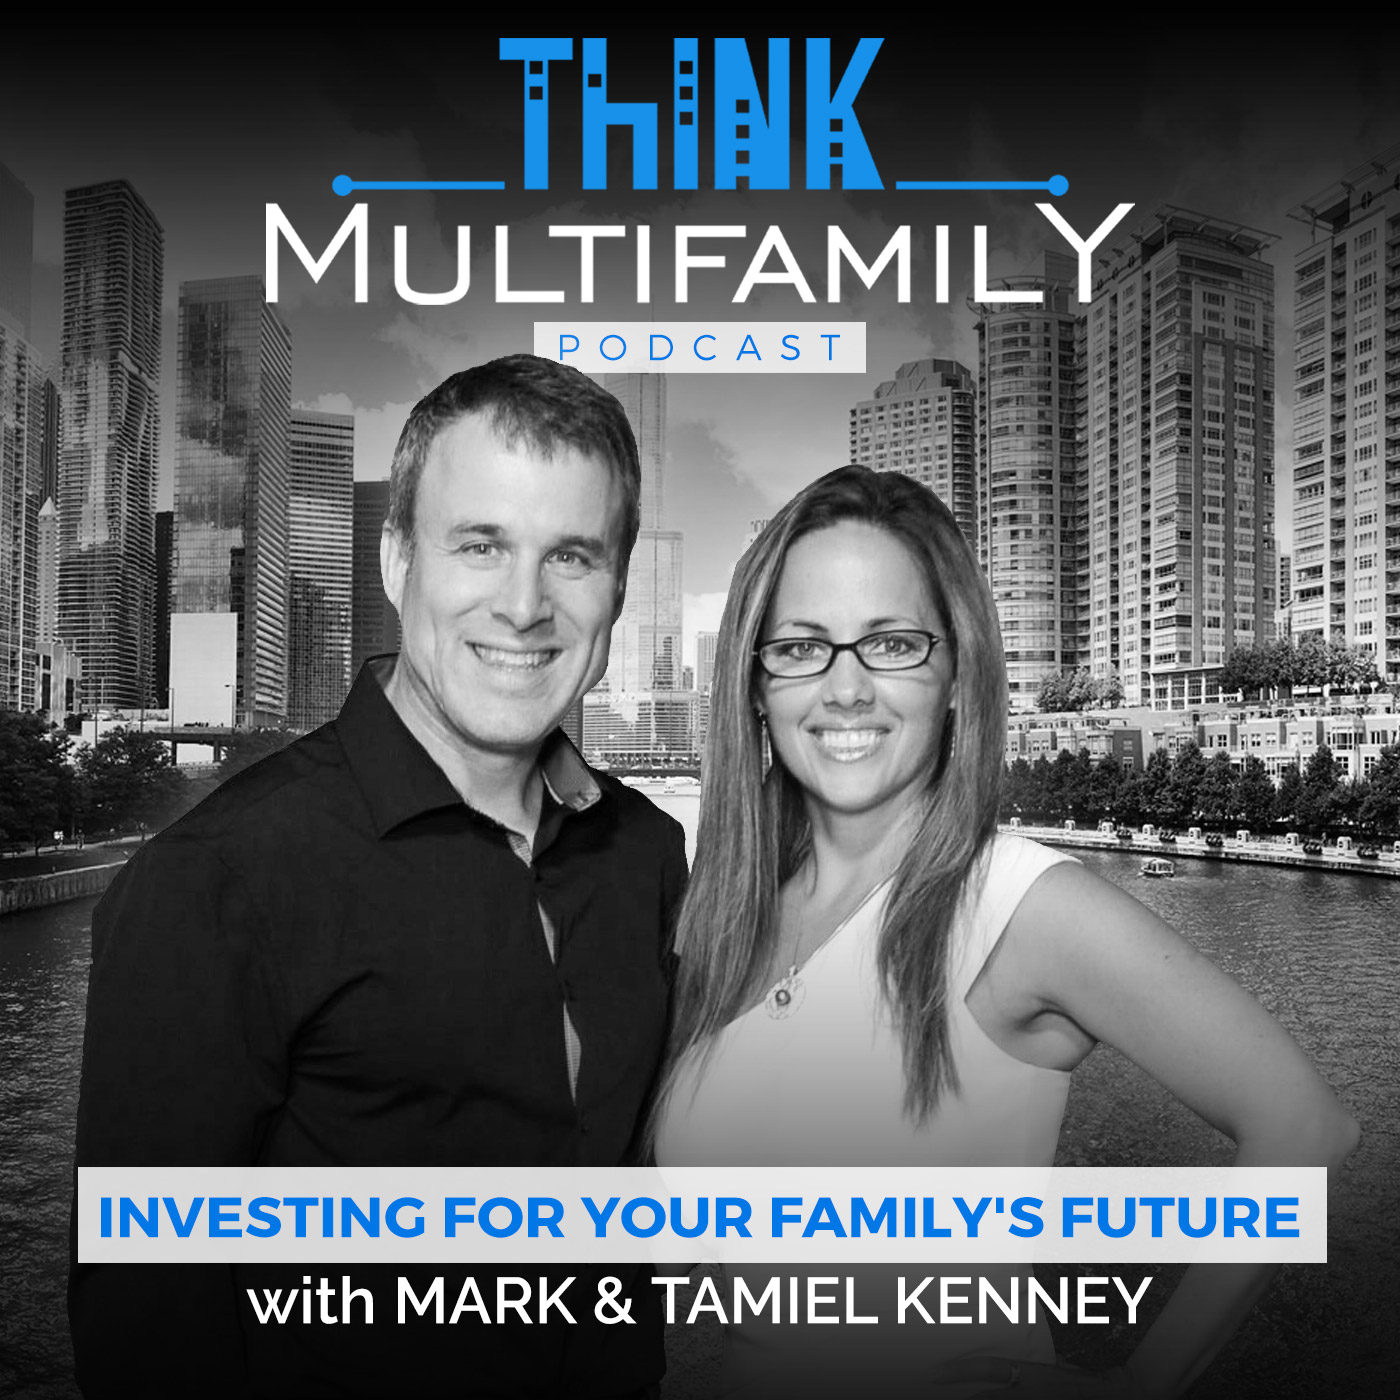 Think Multifamily Podcast with Mark & Tamiel Kenney